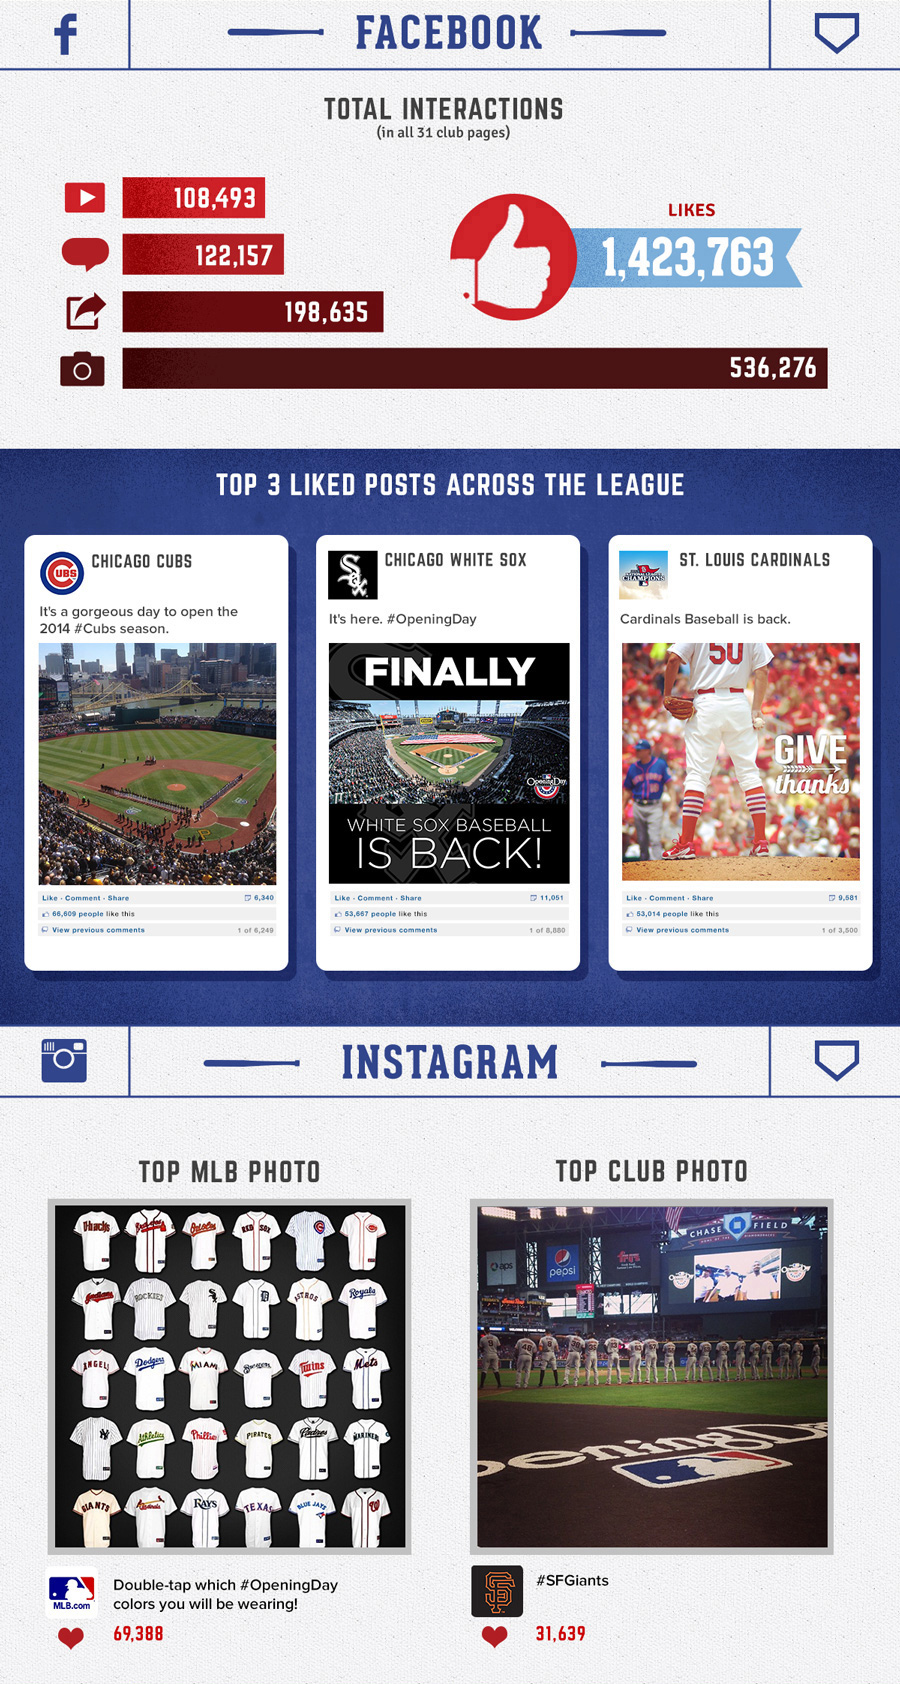 Baseball is back and the fans are BACK with a roar on social media